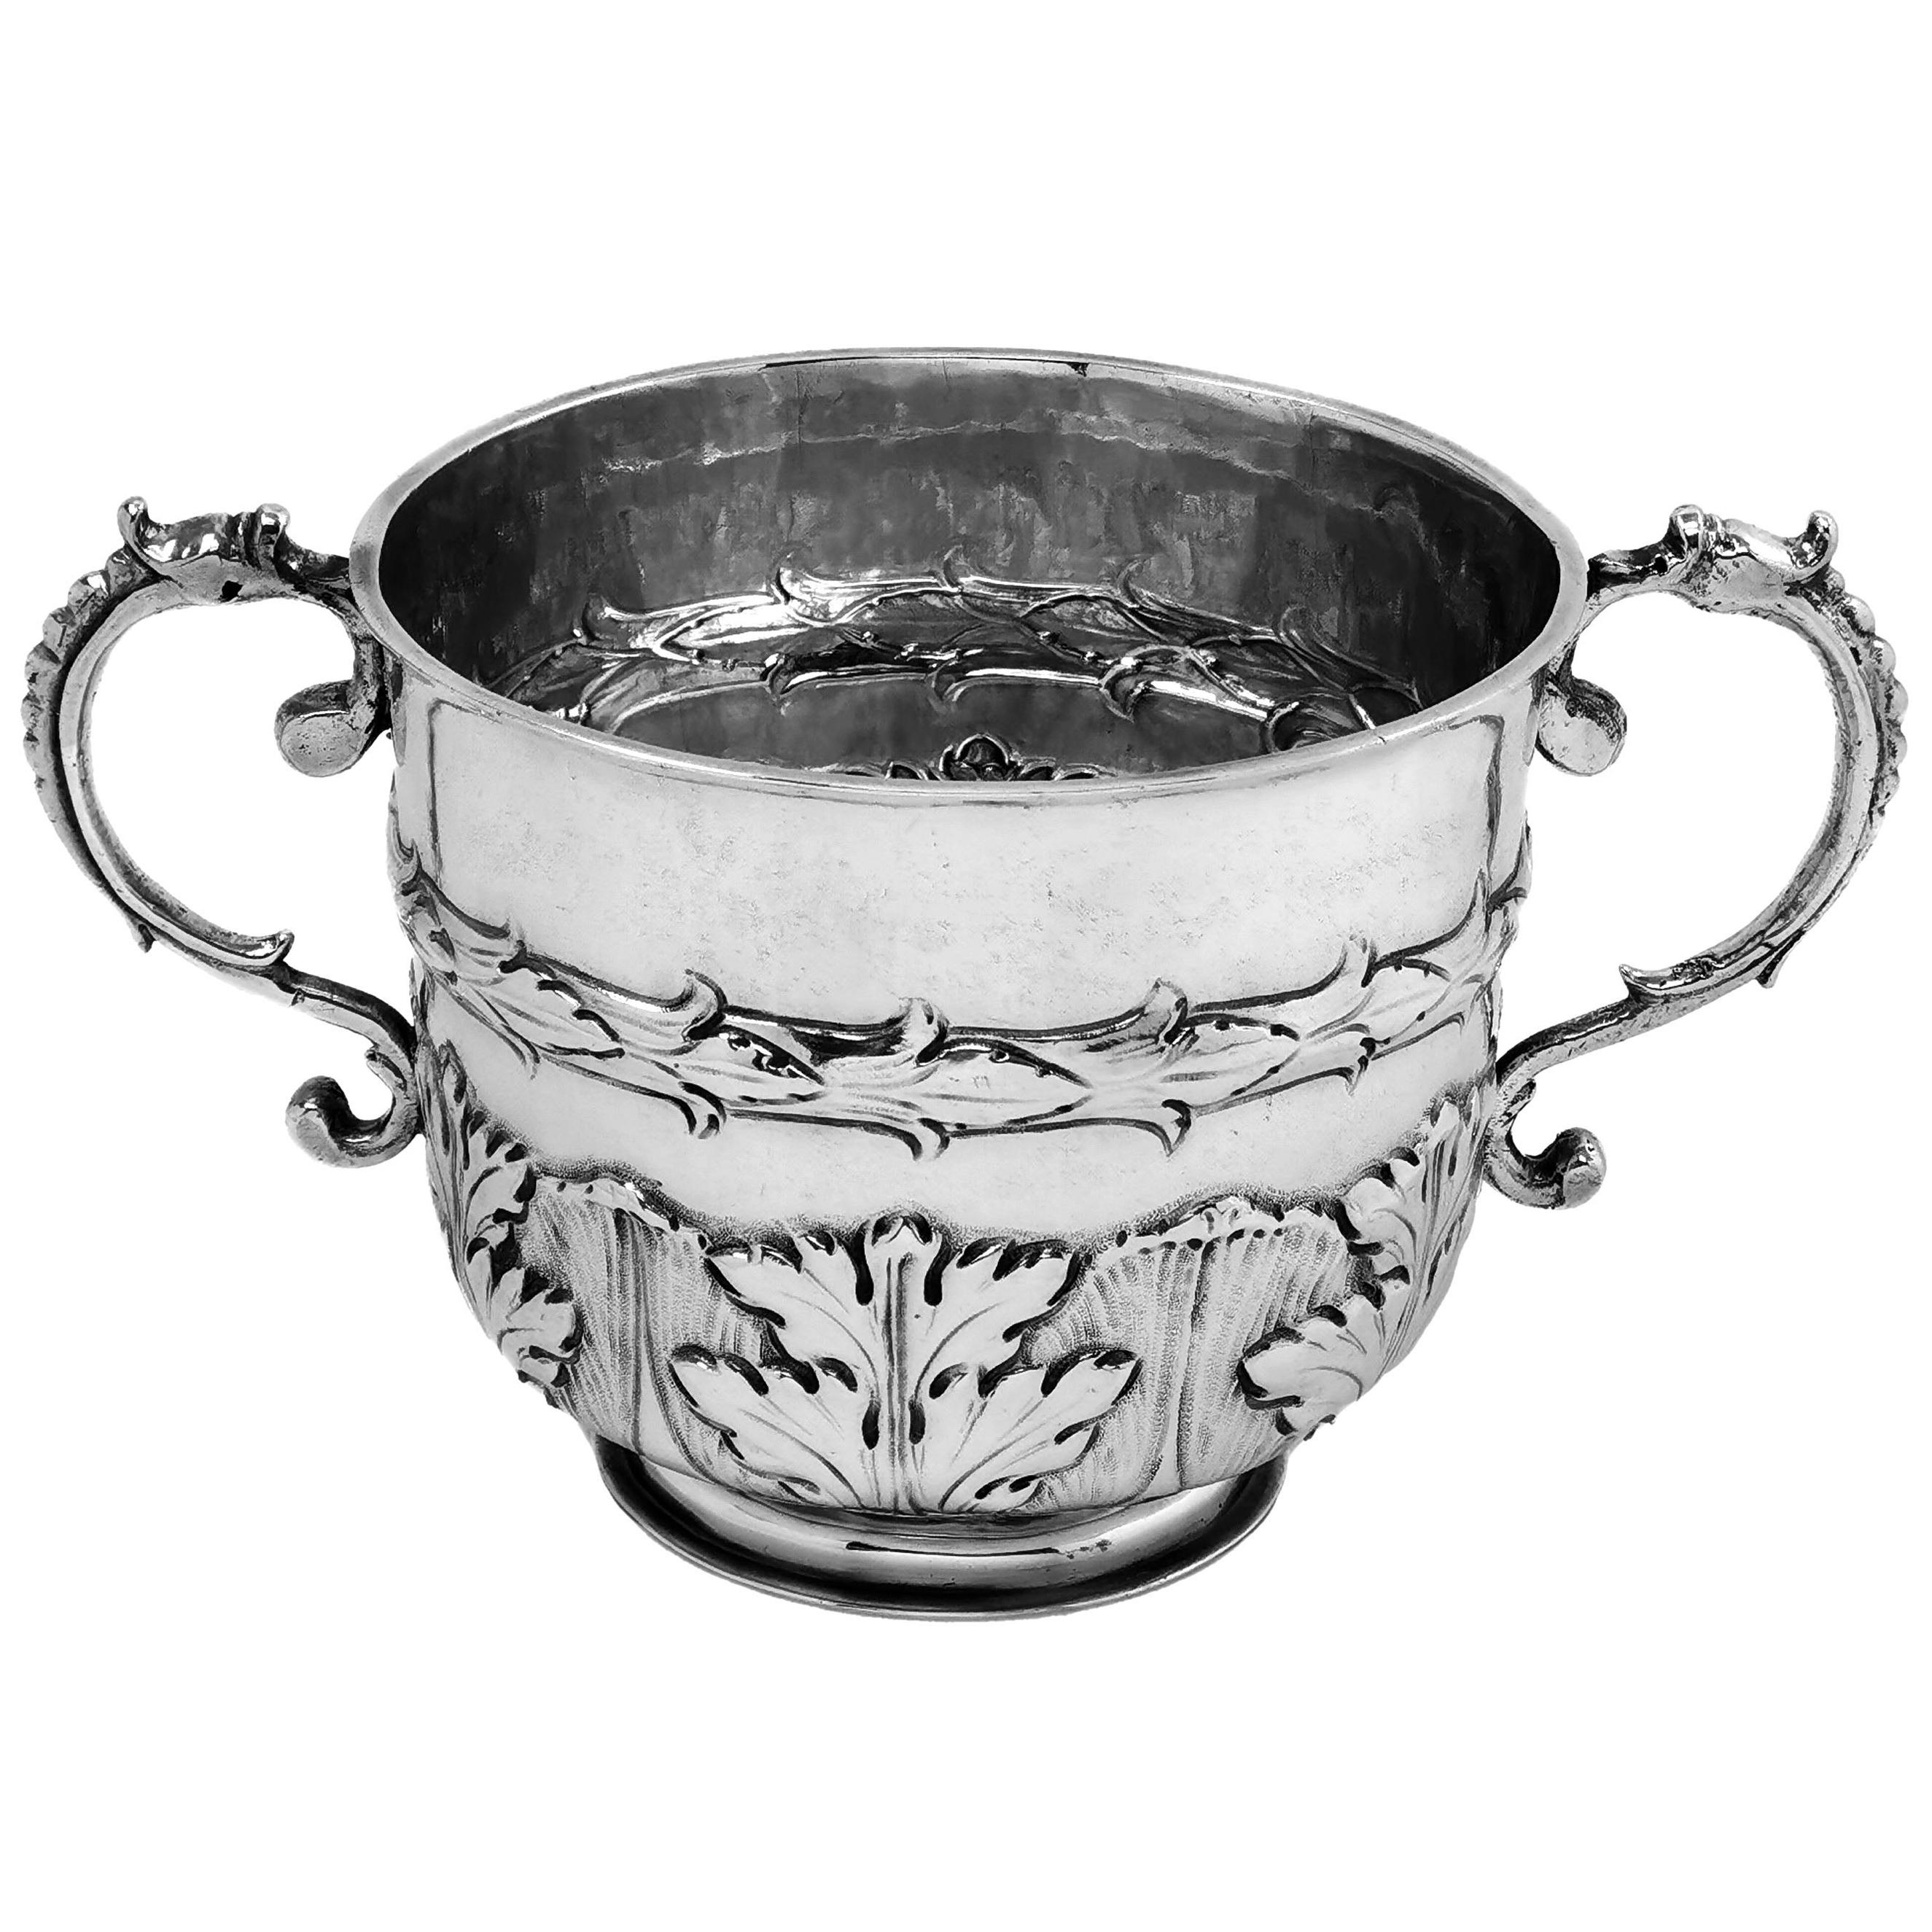 Antique Charles II 17th Century Sterling Silver Porringer Cup, 1679